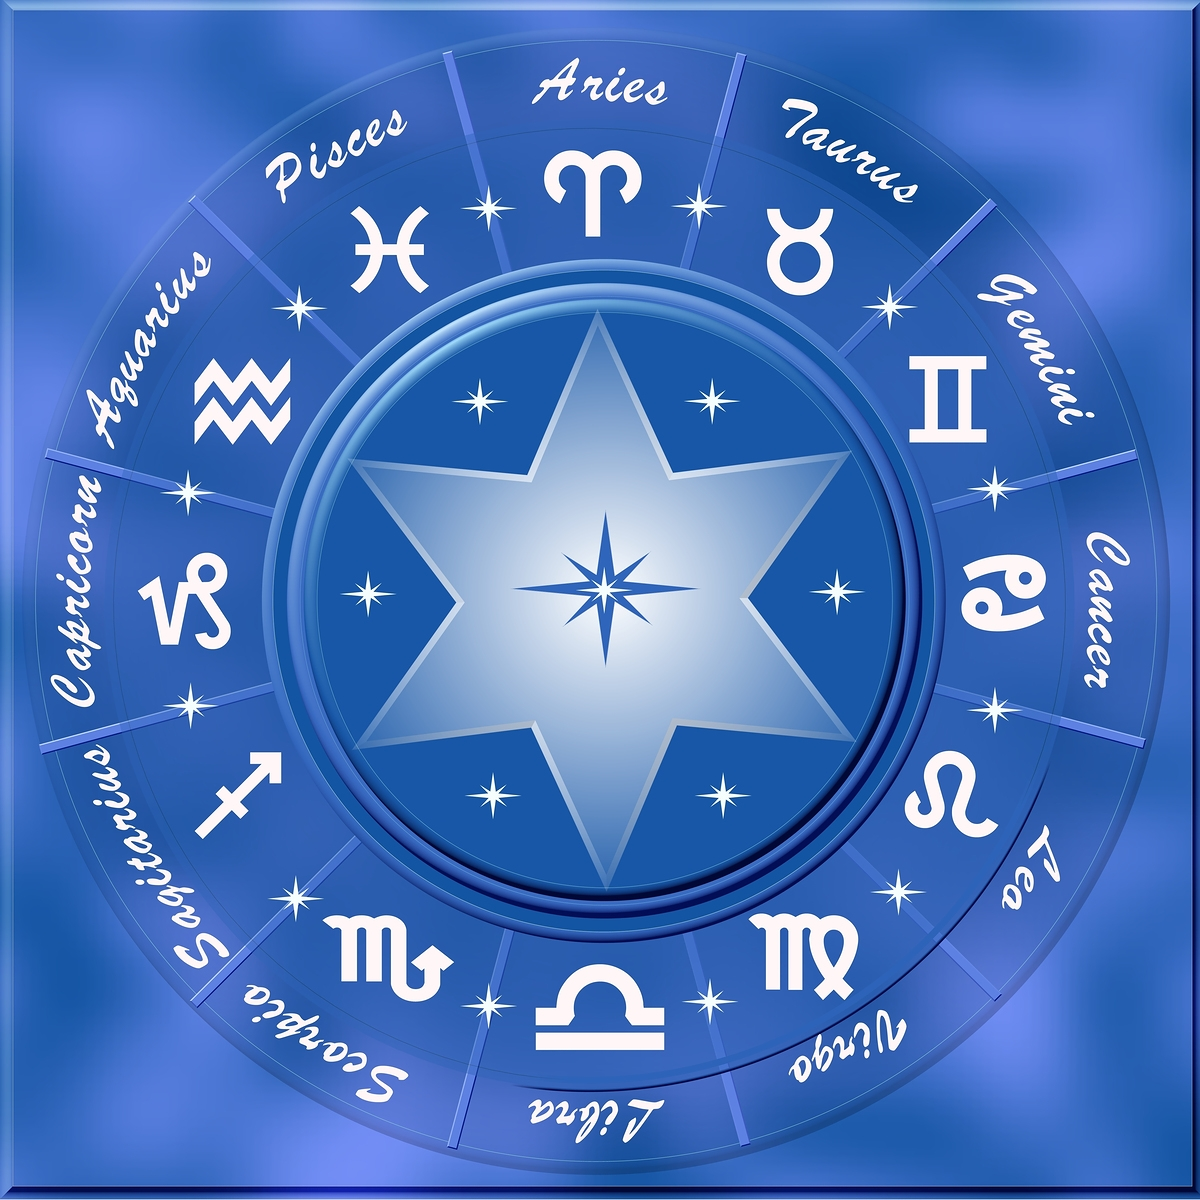 Monthly numerology horoscope photo 4